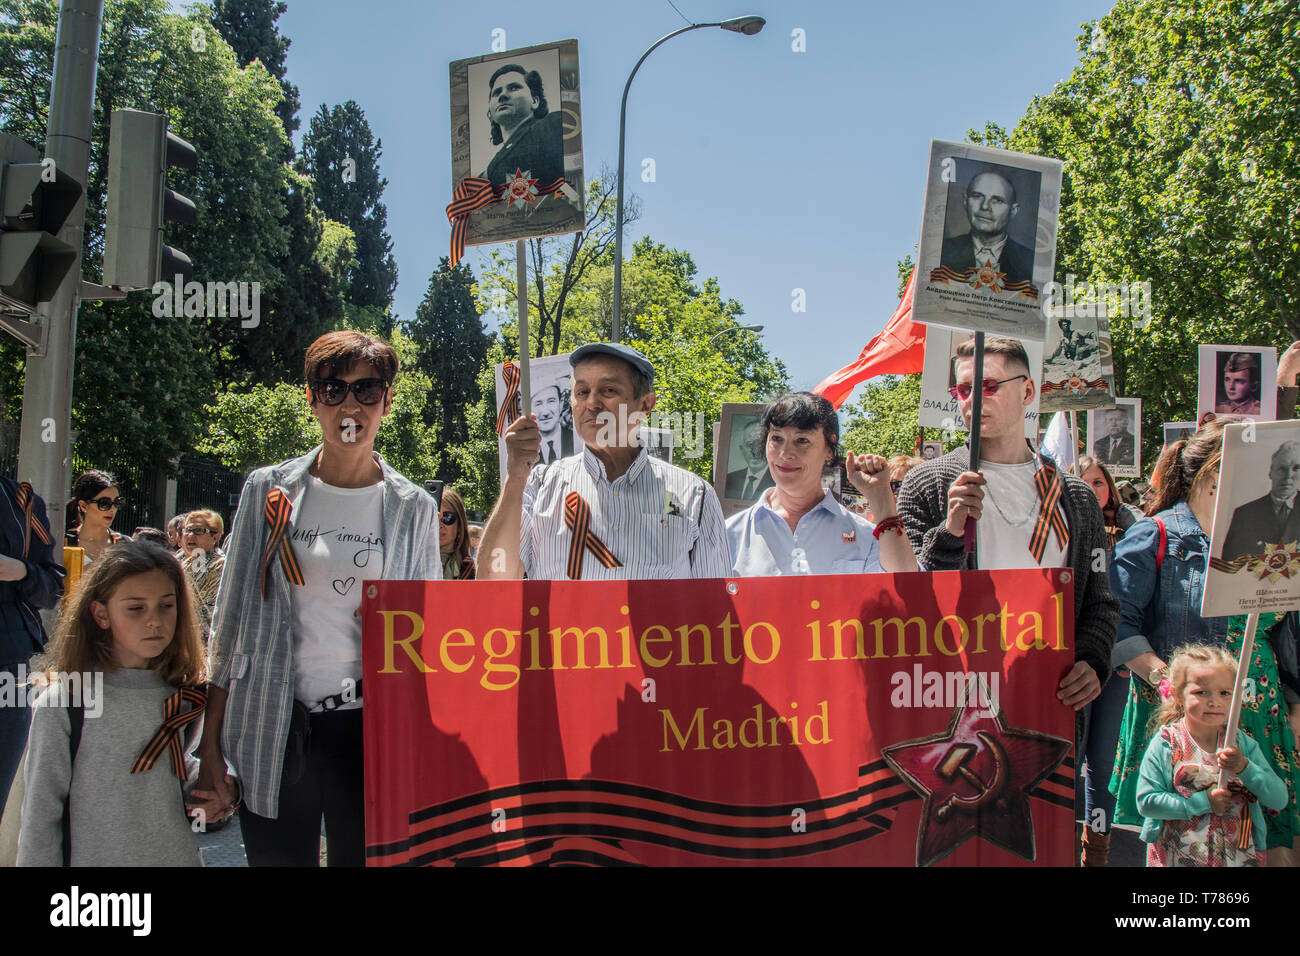 People seen with a red placard, immortal regimen madrid. celebration of the Soviet Union in its victory in the Second World War by the Russian Hispano - Stock Image